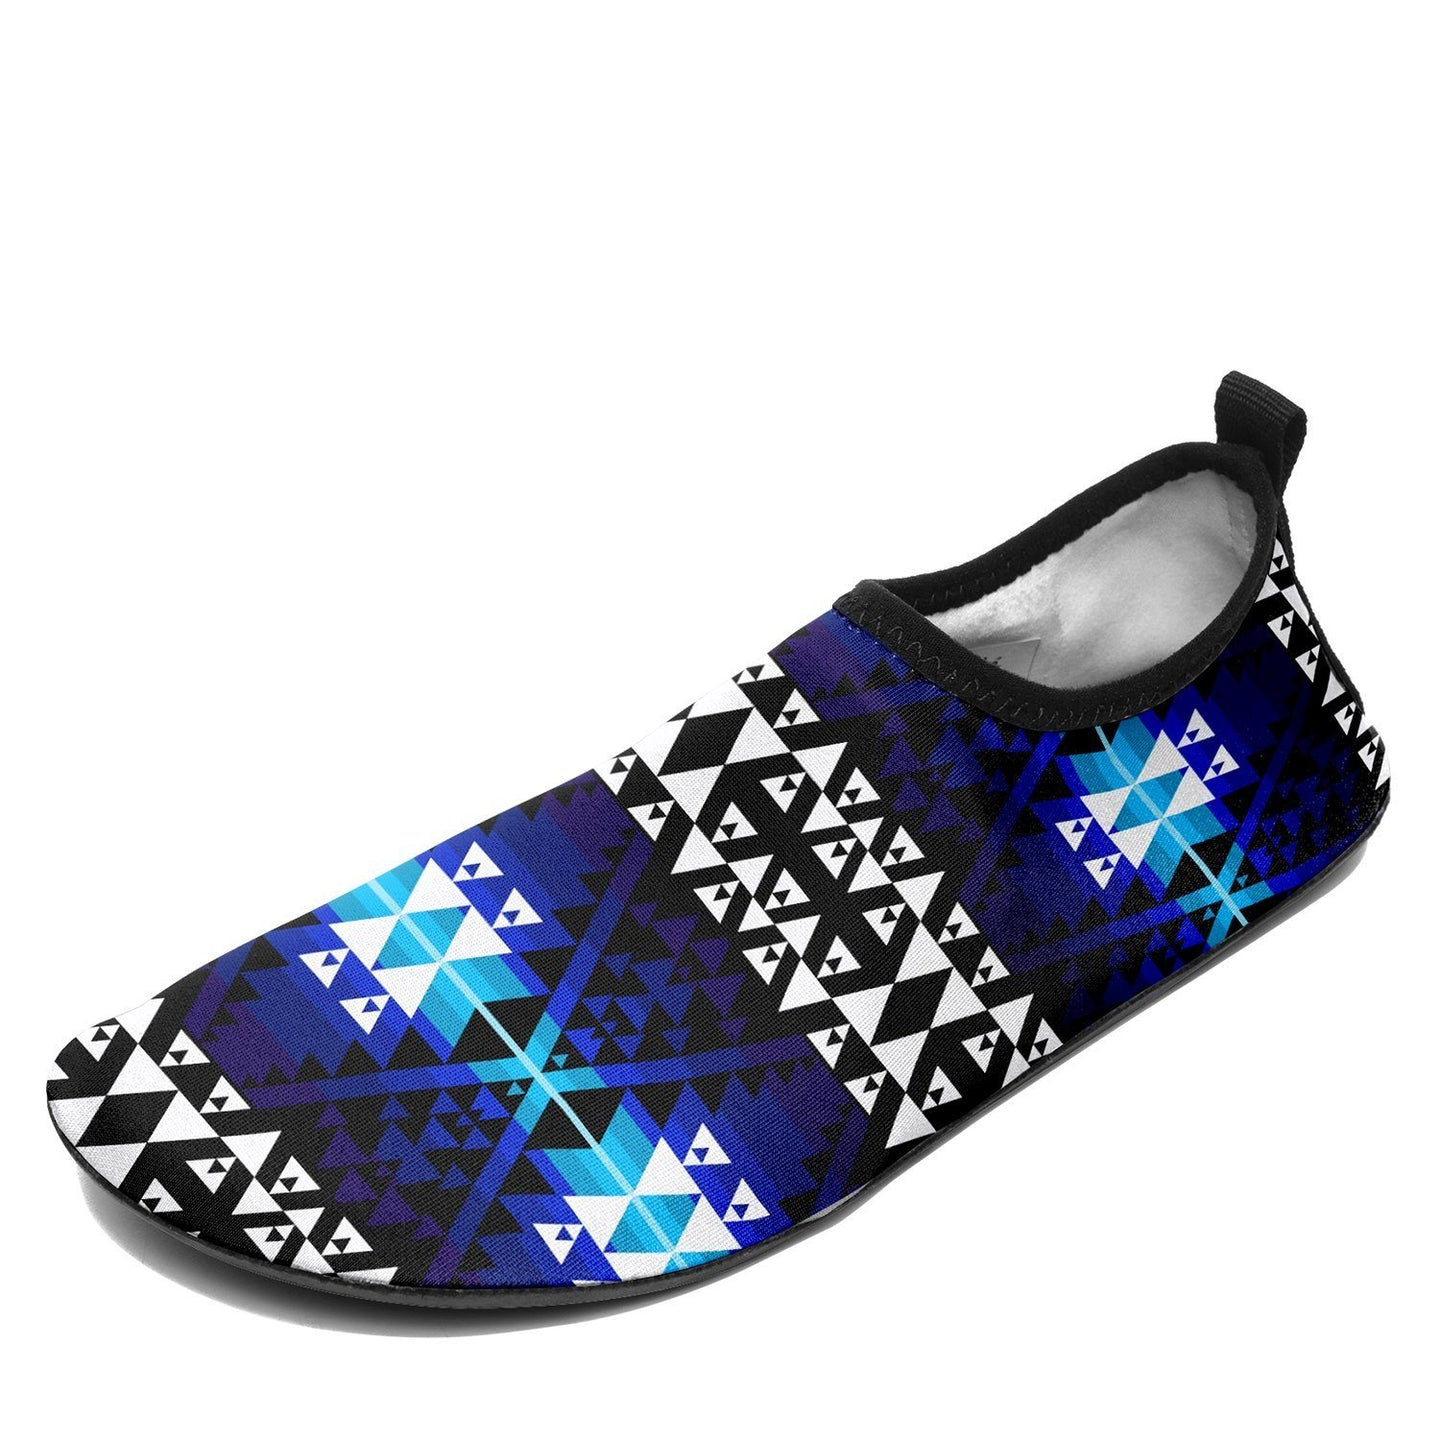 Writing on Stone Night Watch Sockamoccs Kid's Slip On Shoes 49 Dzine